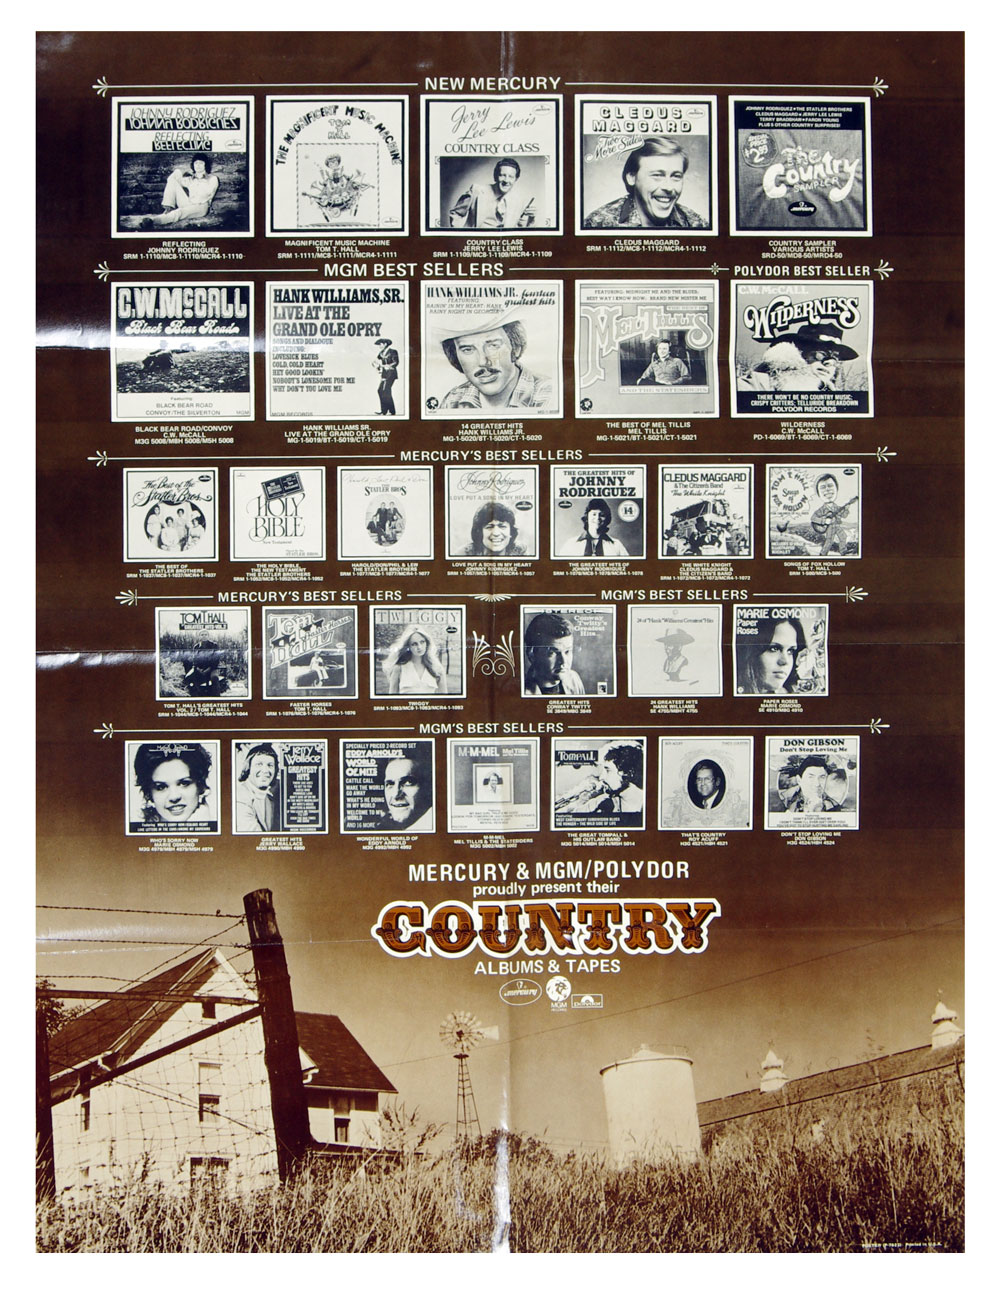 Country Music Best Seller Poster 1975 Mercury MGM Polydor 21 x 28